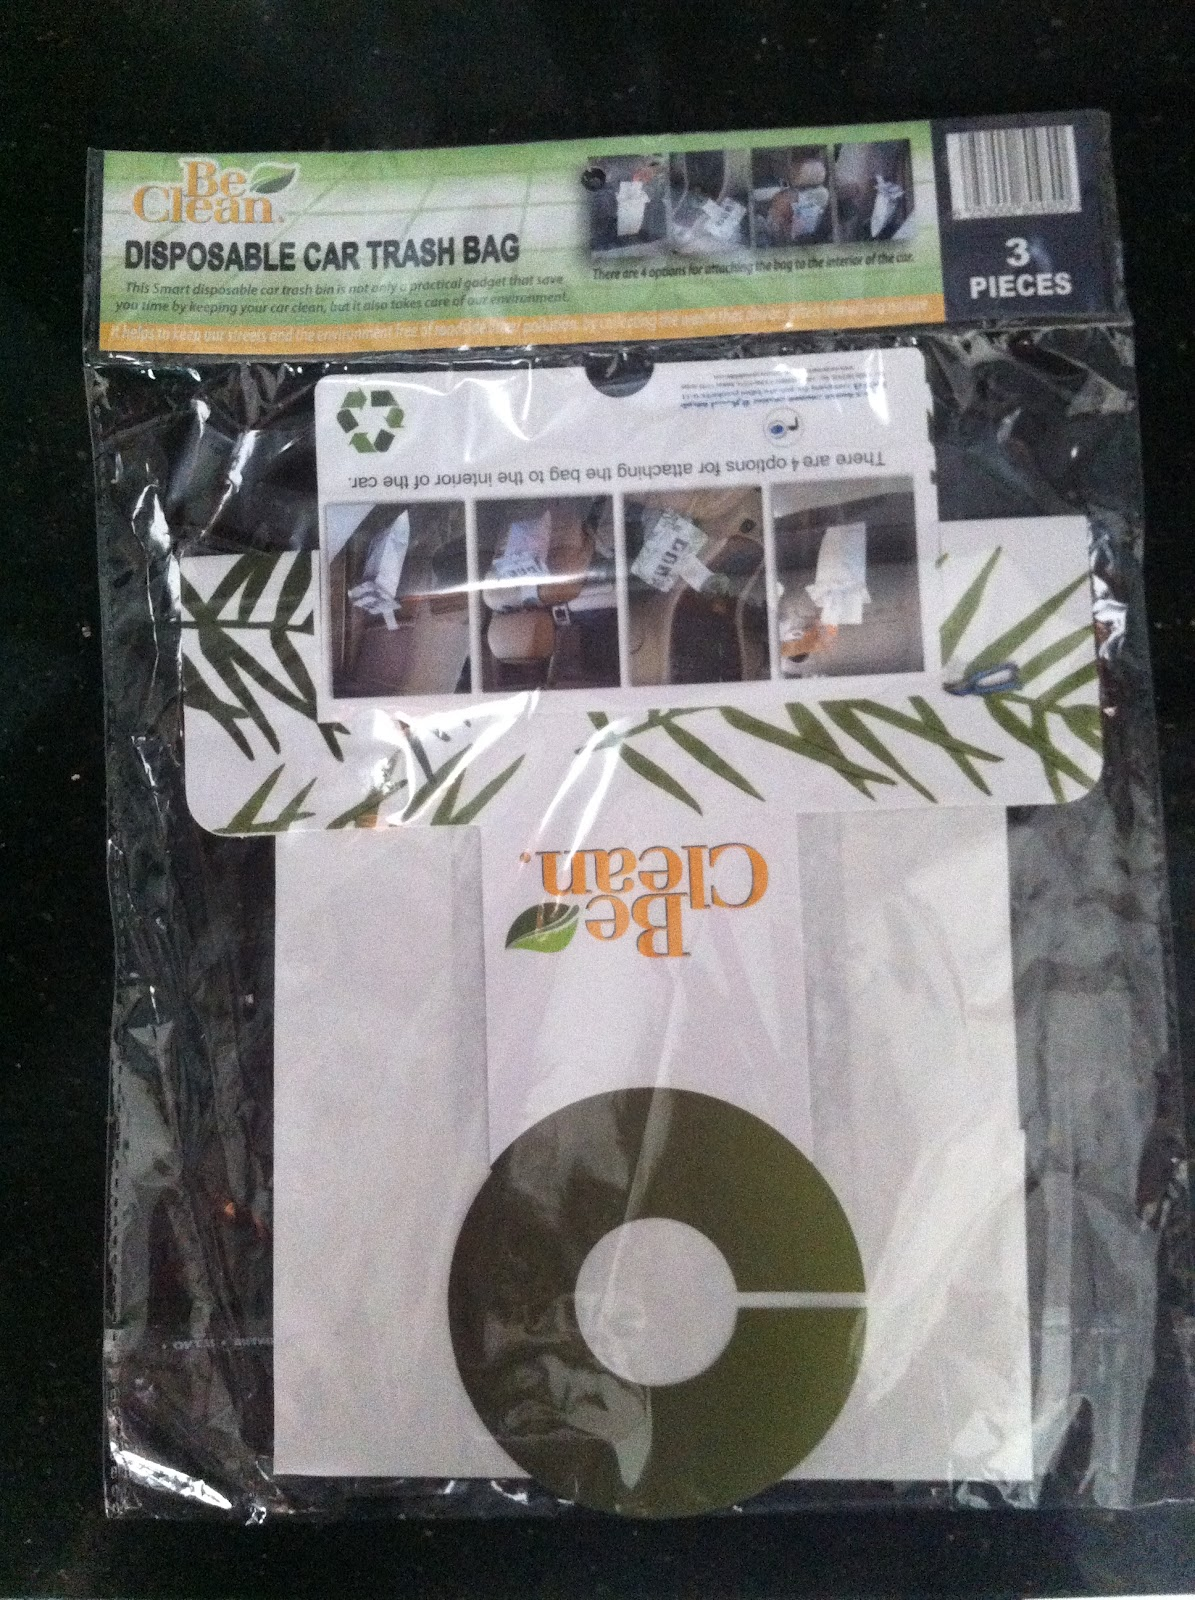 It Is The Be Clean Disposable Car Trash Bag And Can Purchased At Cozmo For 1250 JD With 3 Bags In Each Pack